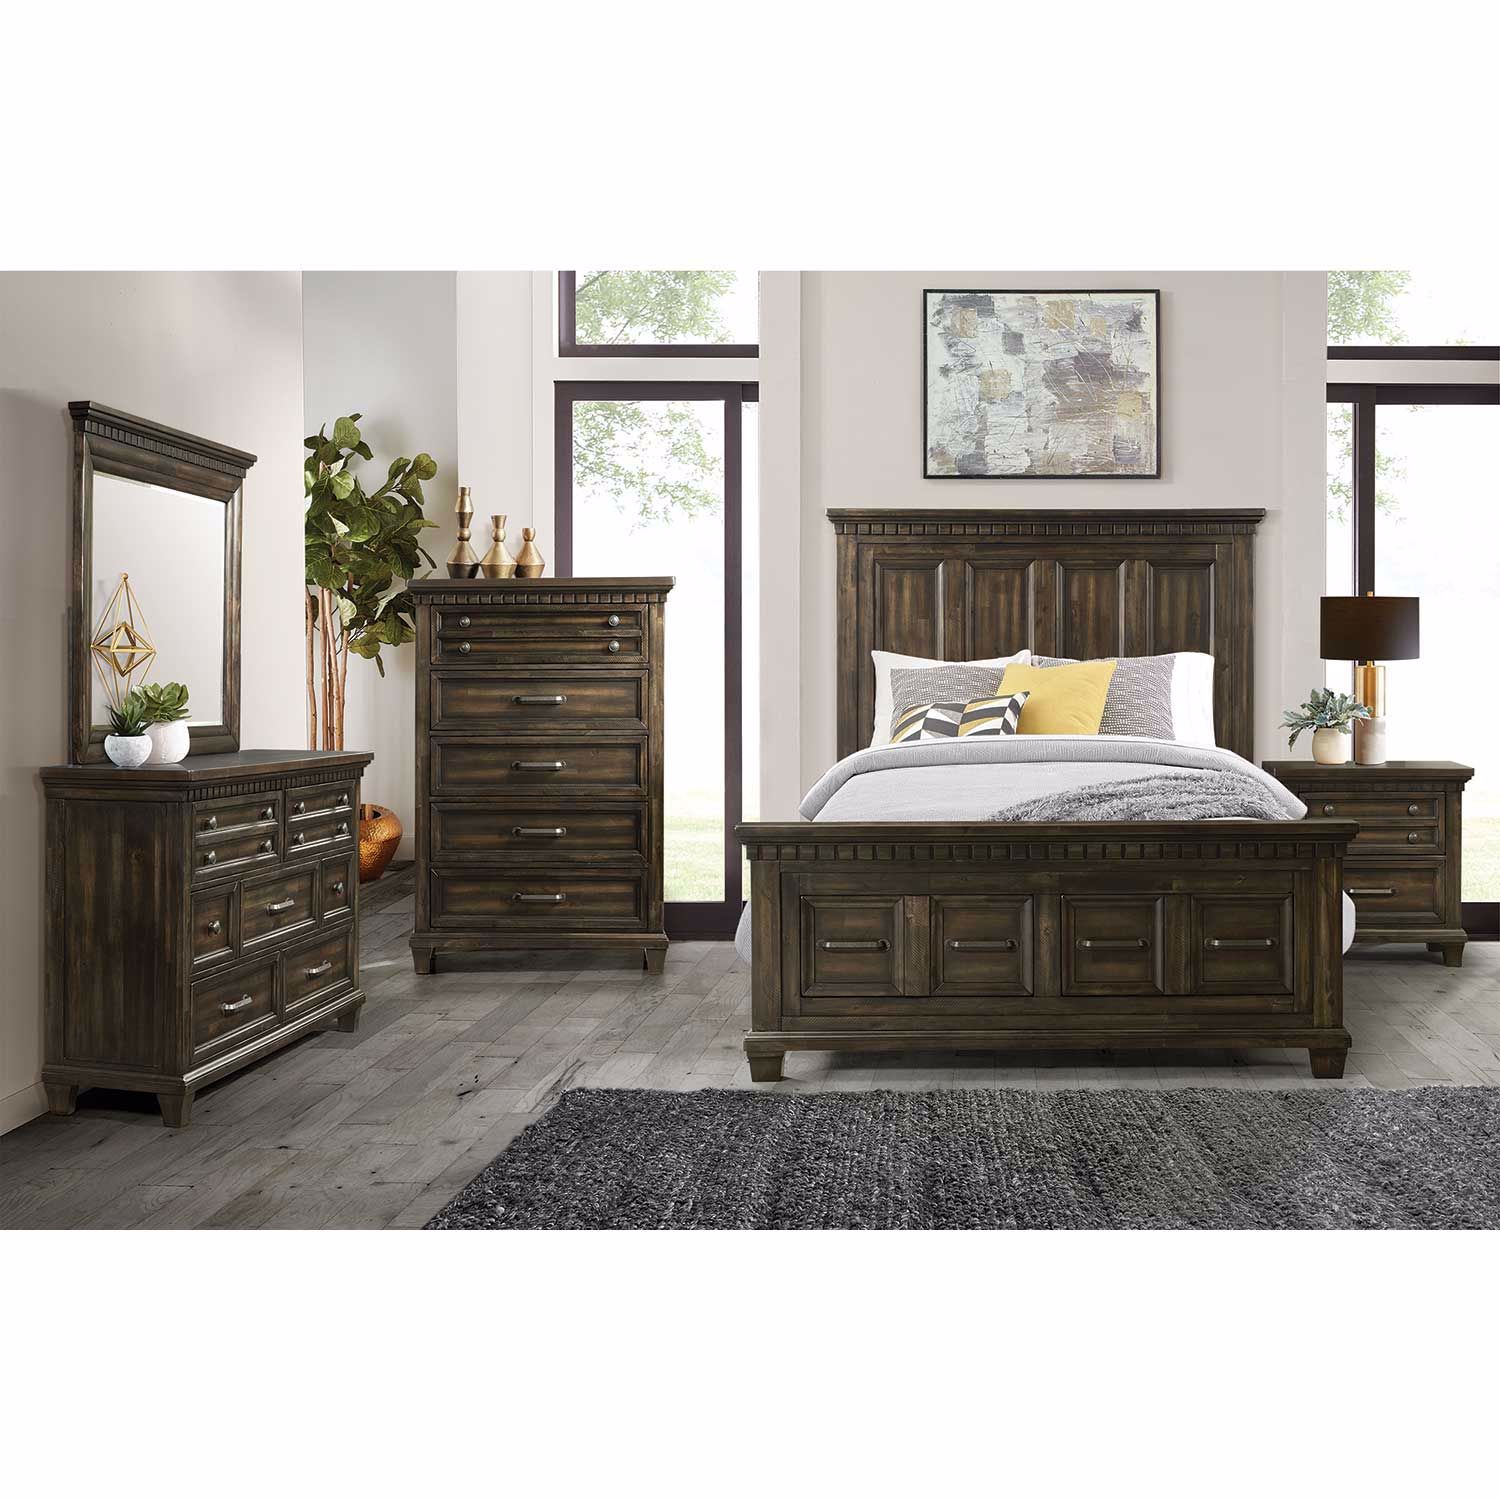 Picture of McCabe Drawer Dresser